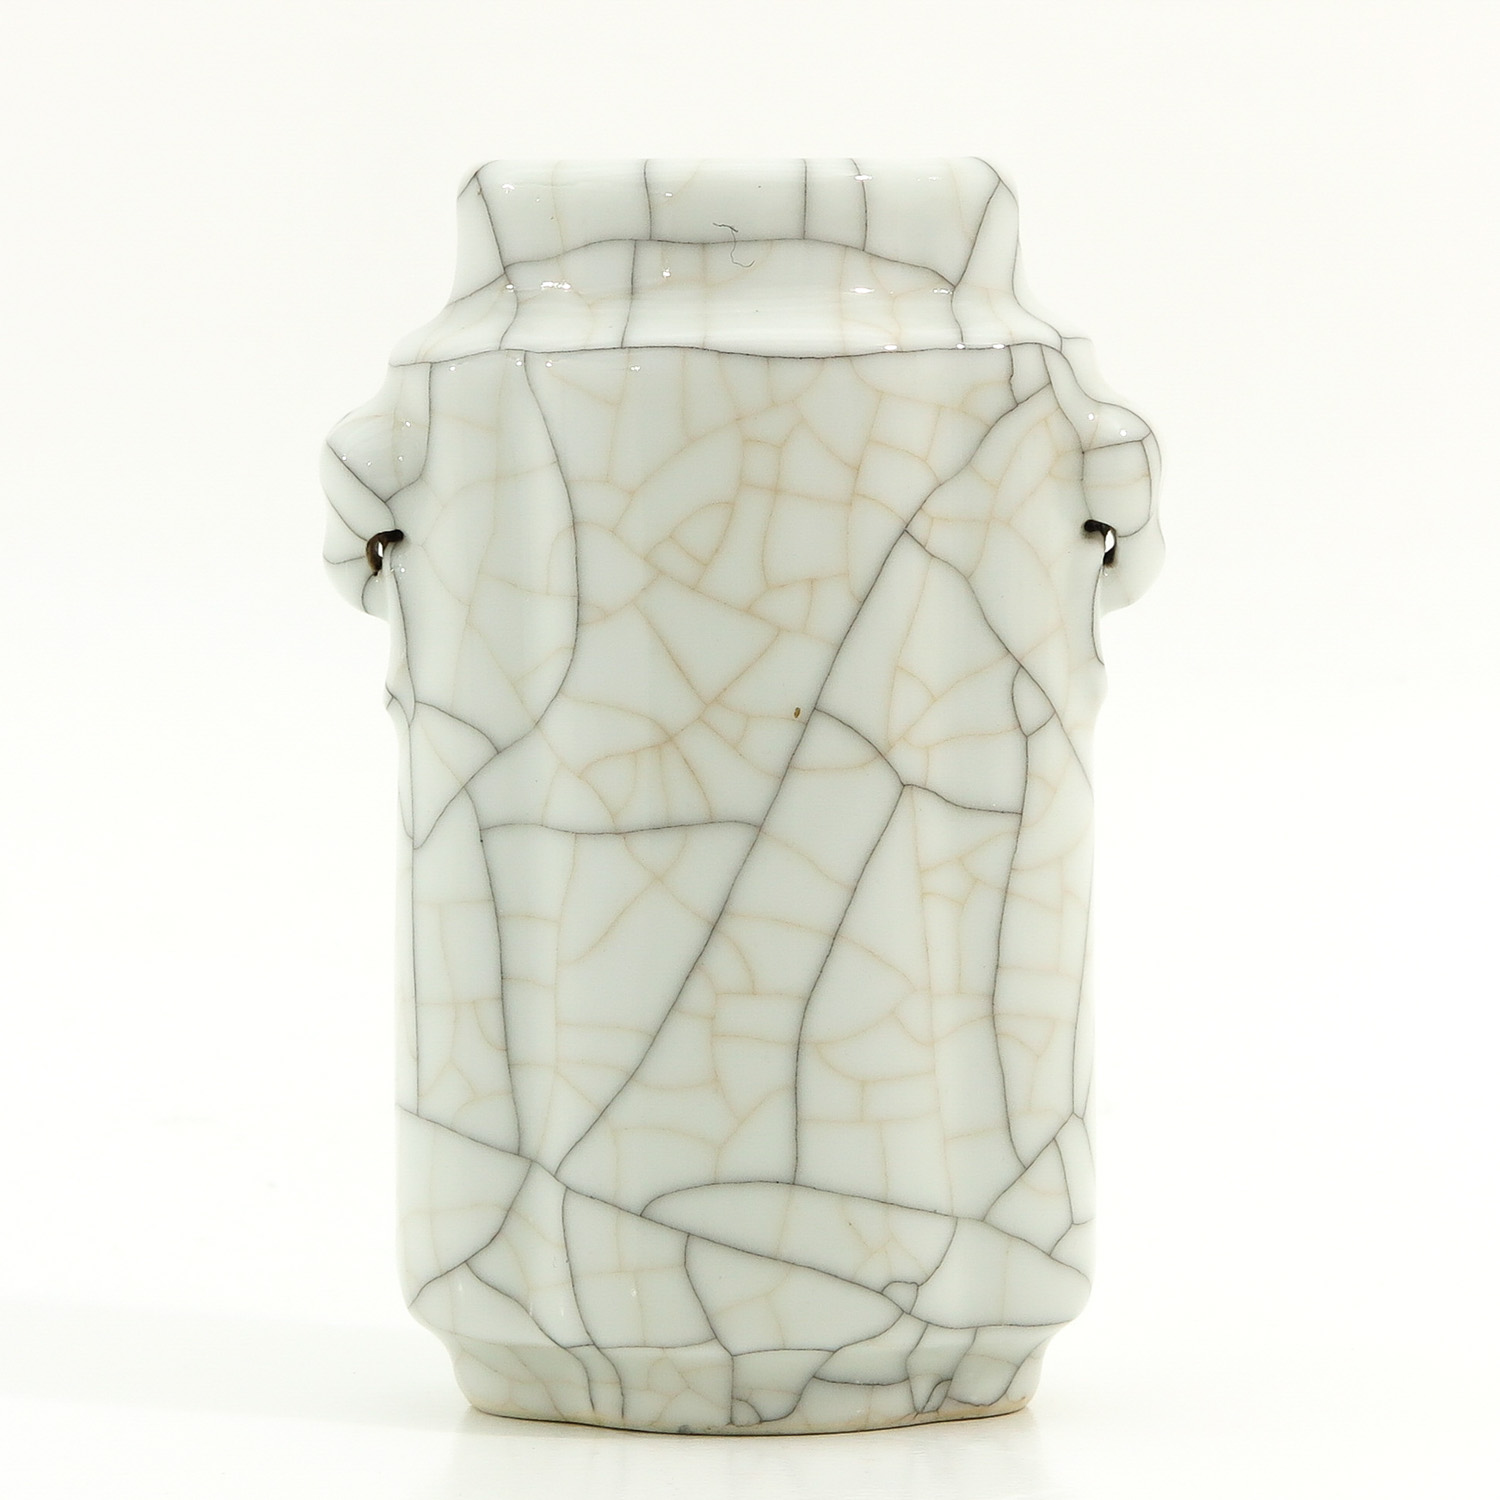 A Crackle Decor Vase - Image 3 of 9